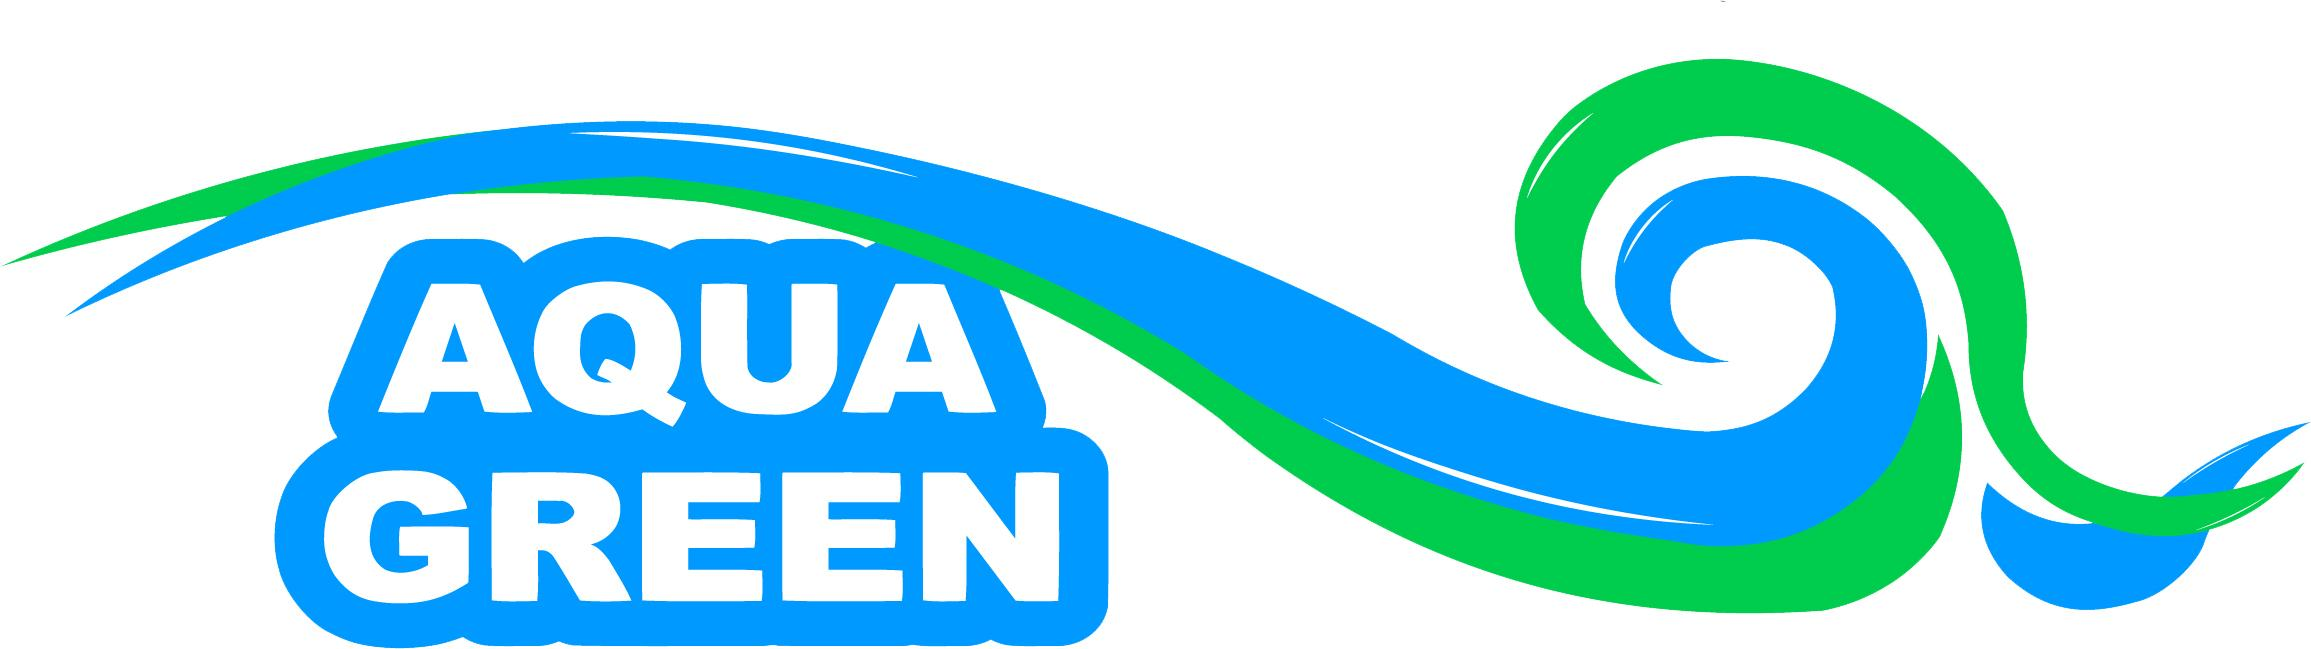 aquagreen logo_1_31